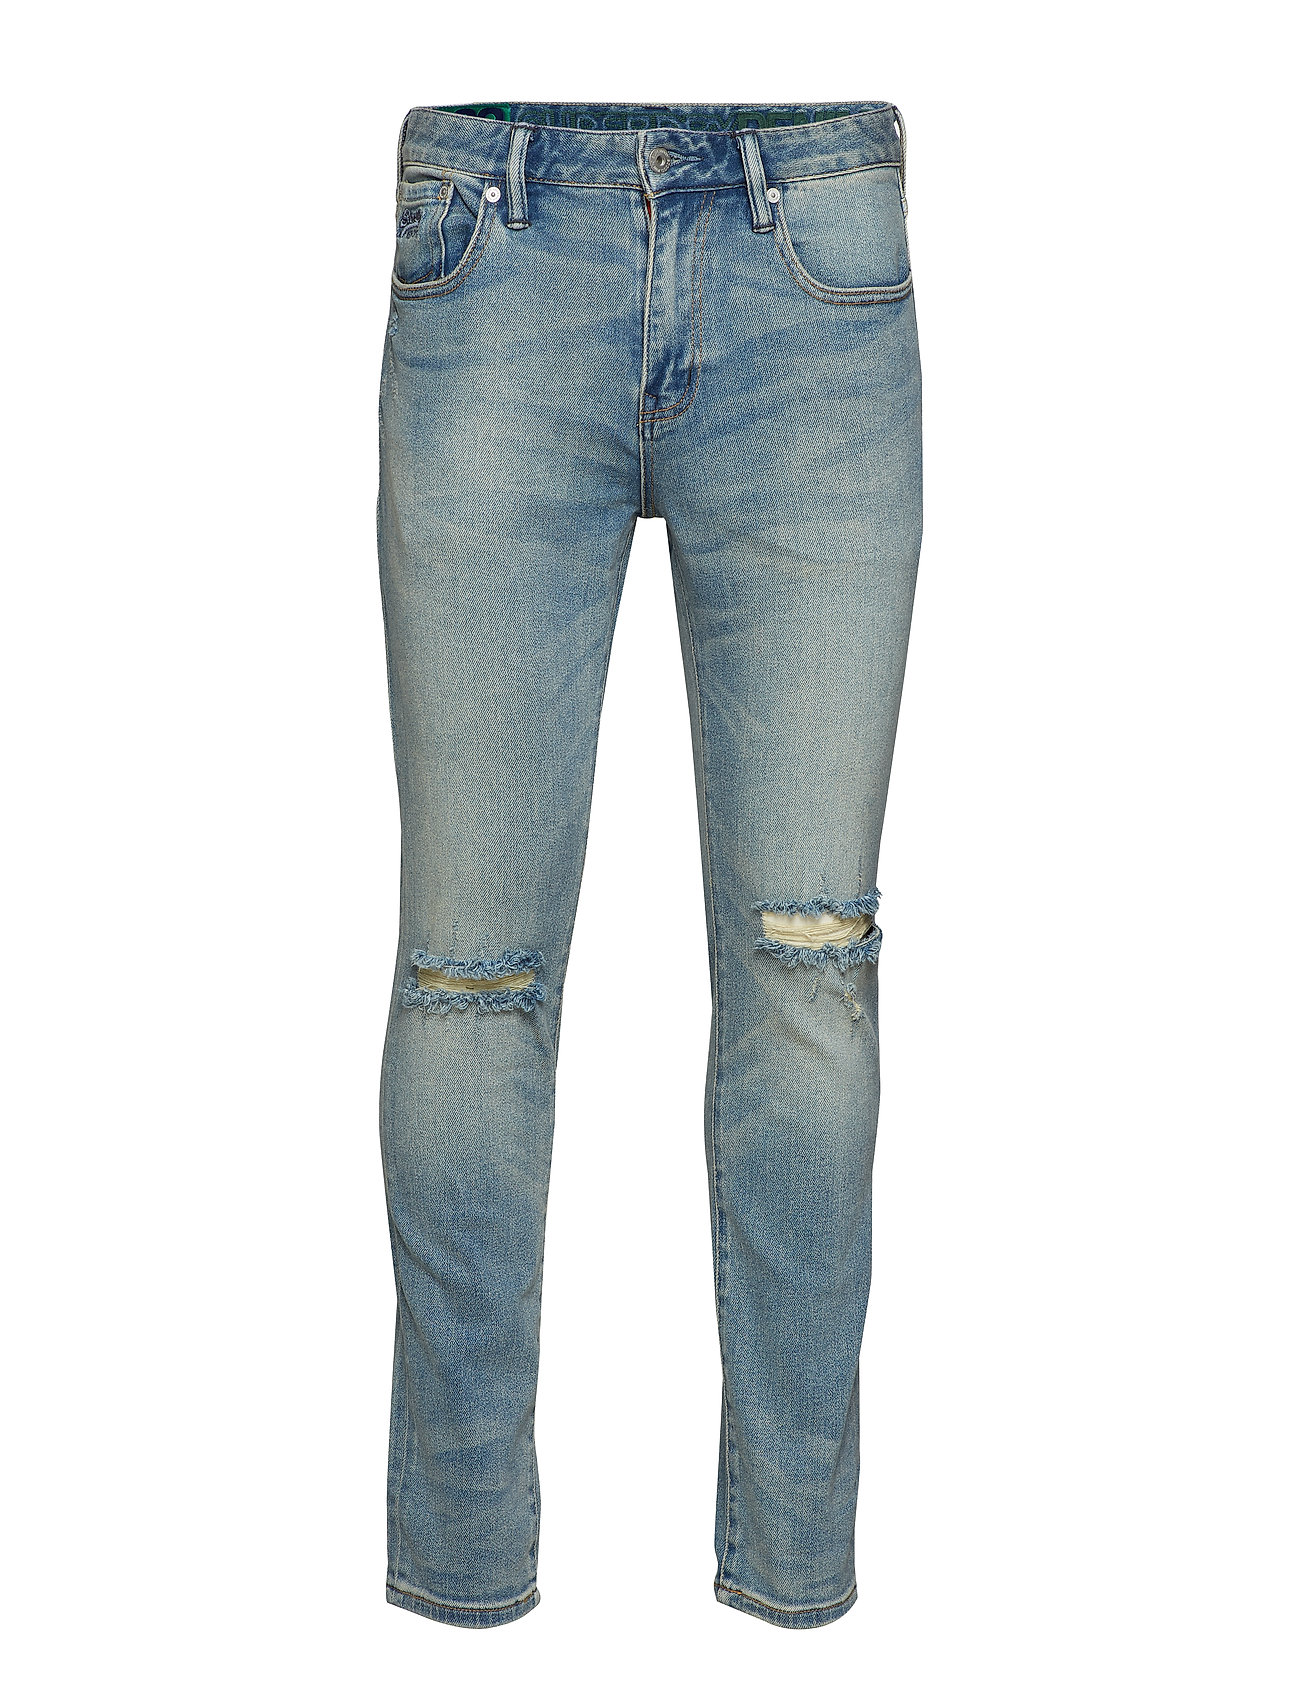 Superdry TYLER SLIM COMFORT - HEADFORD BLUE RIP